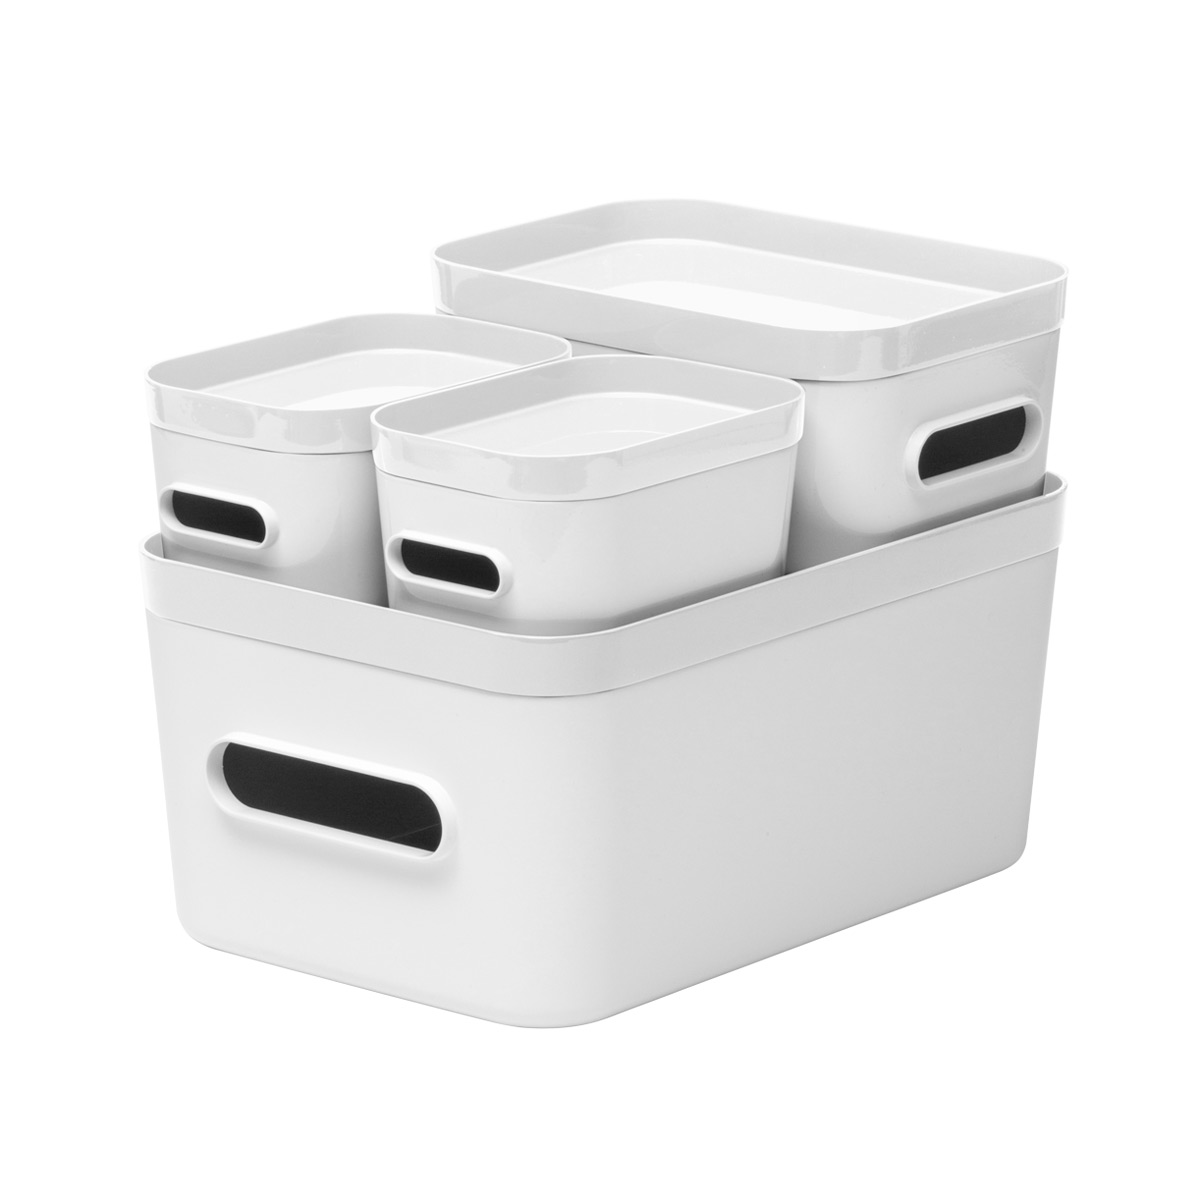 Smart Store White Compact Plastic Bins 4-Pack with White Lids